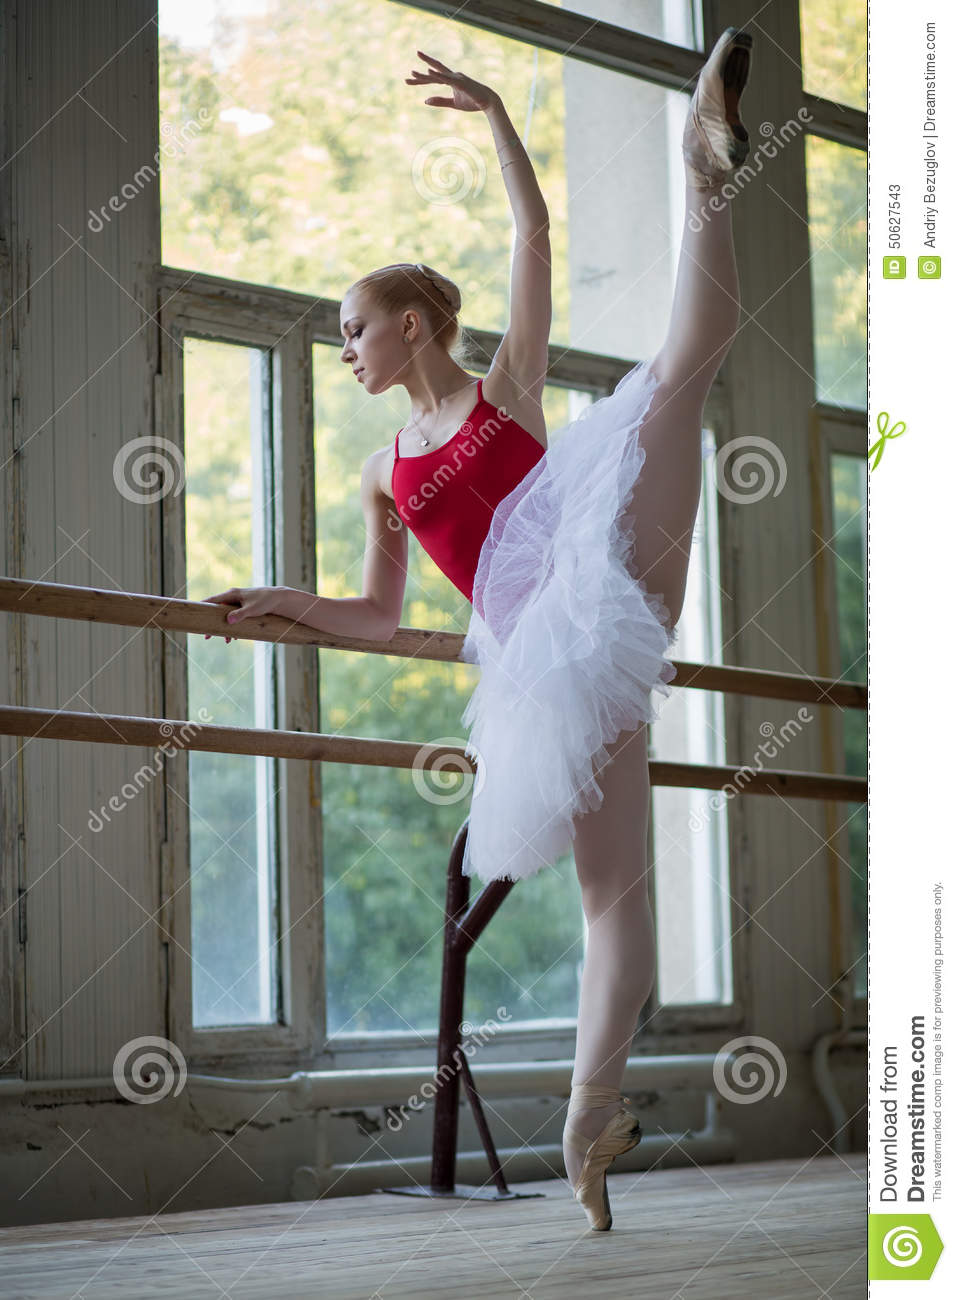 Young Ballerina Standing On One Leg On Your Toes In Pointe